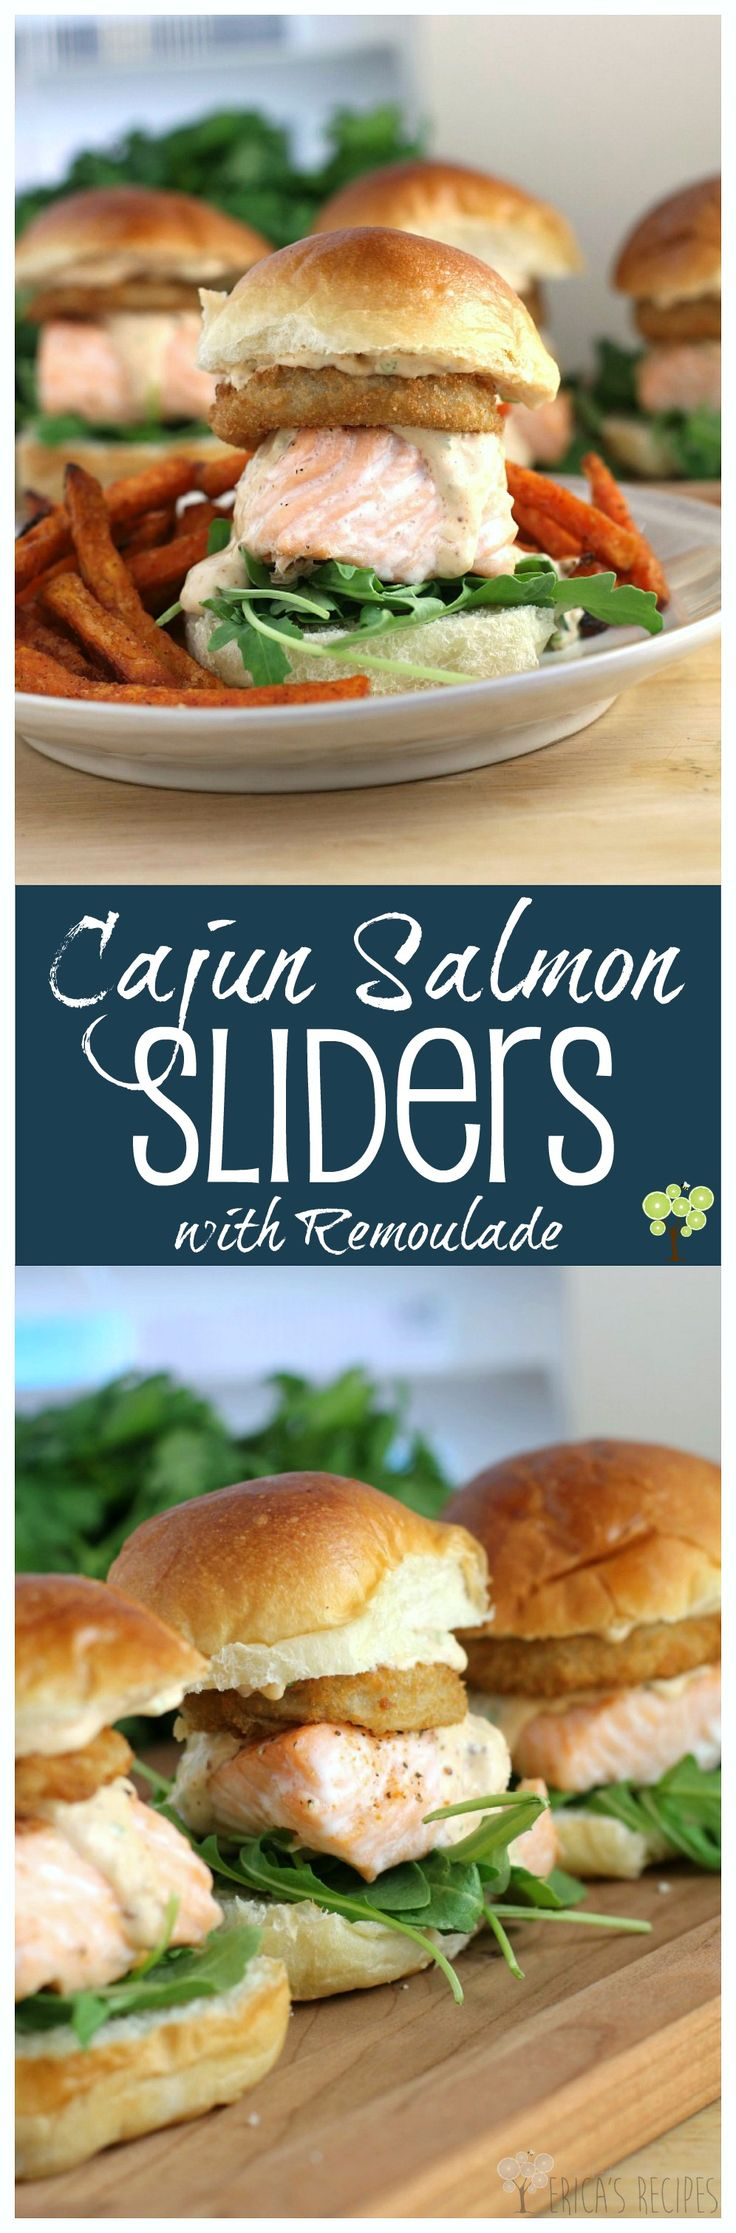 Cajun Salmon Sliders with Remoulade from EricasRecipes.com. #SpringIntoFlavor #ad